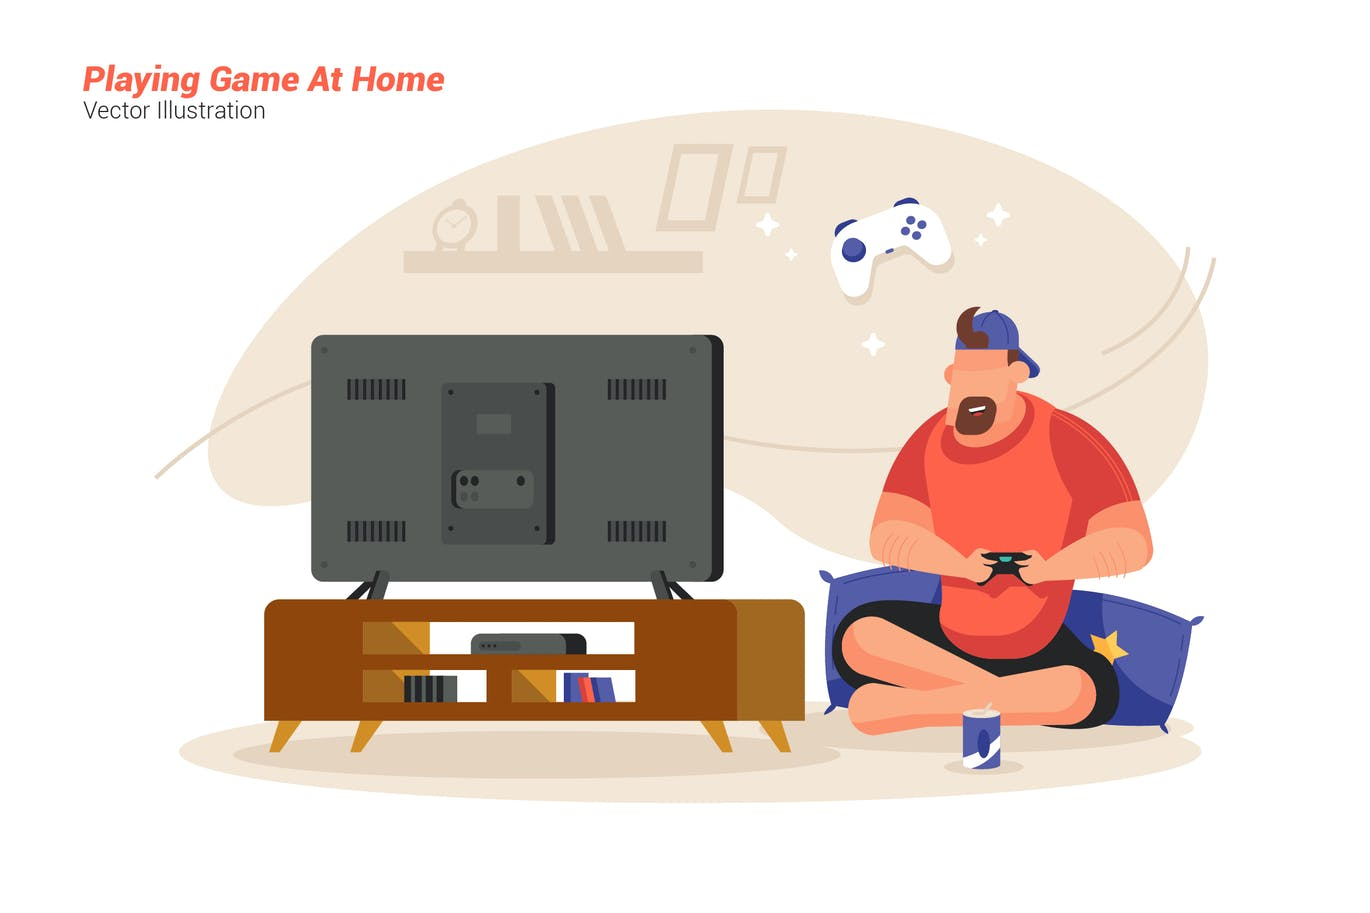 Game At Home - Vector Illustration